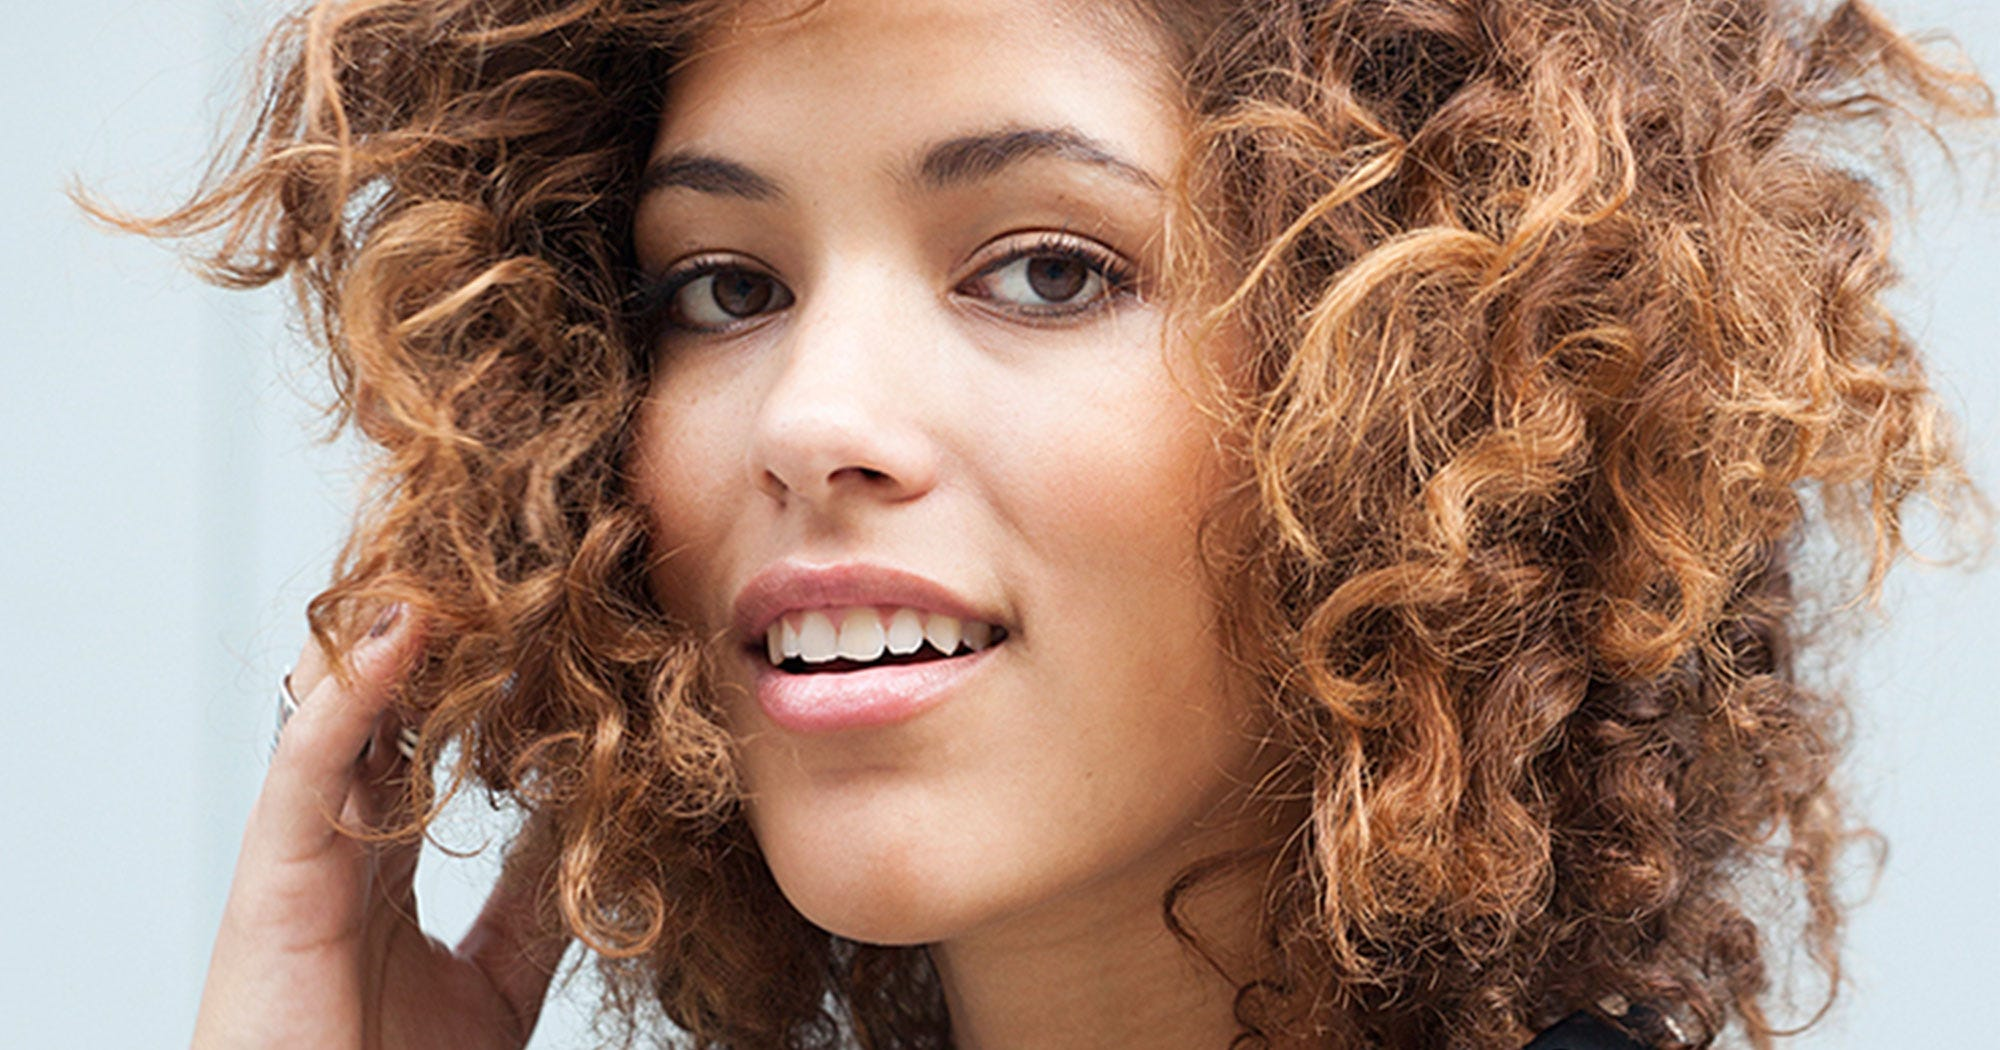 tips for styling curly hair curly hair style tips 3896